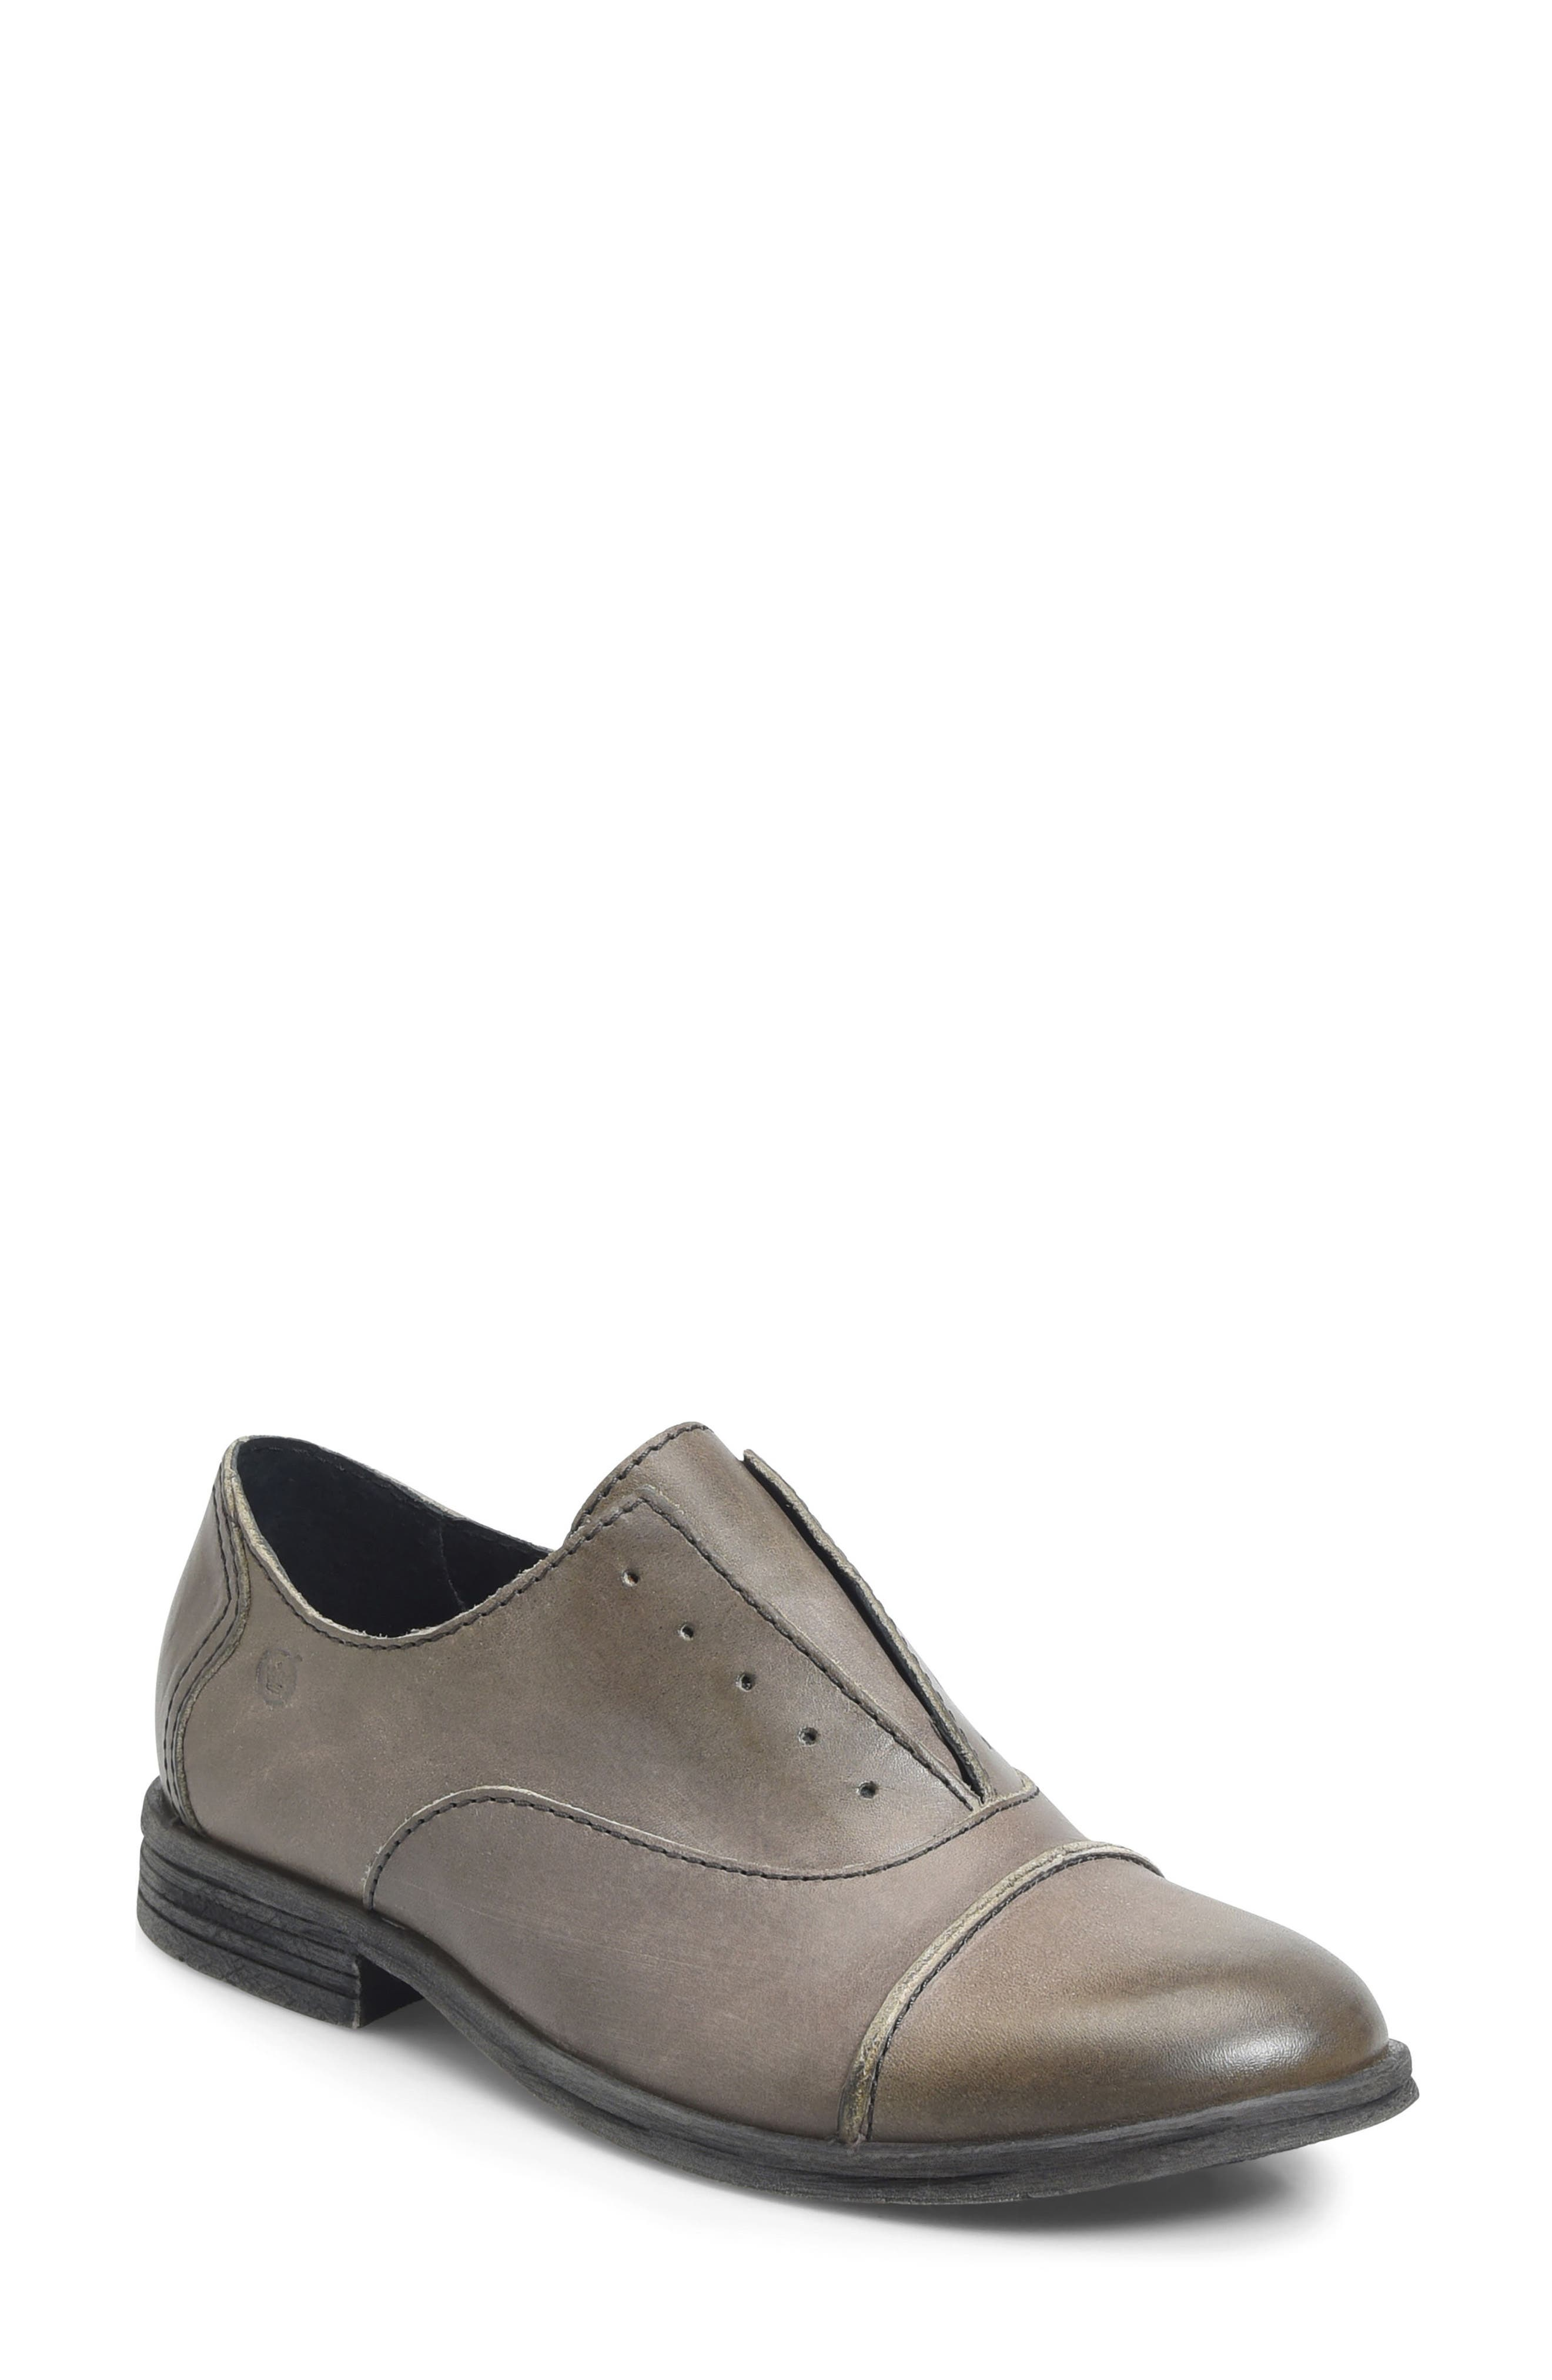 Forato Slip-On Oxford,                         Main,                         color, Light Grey Leather